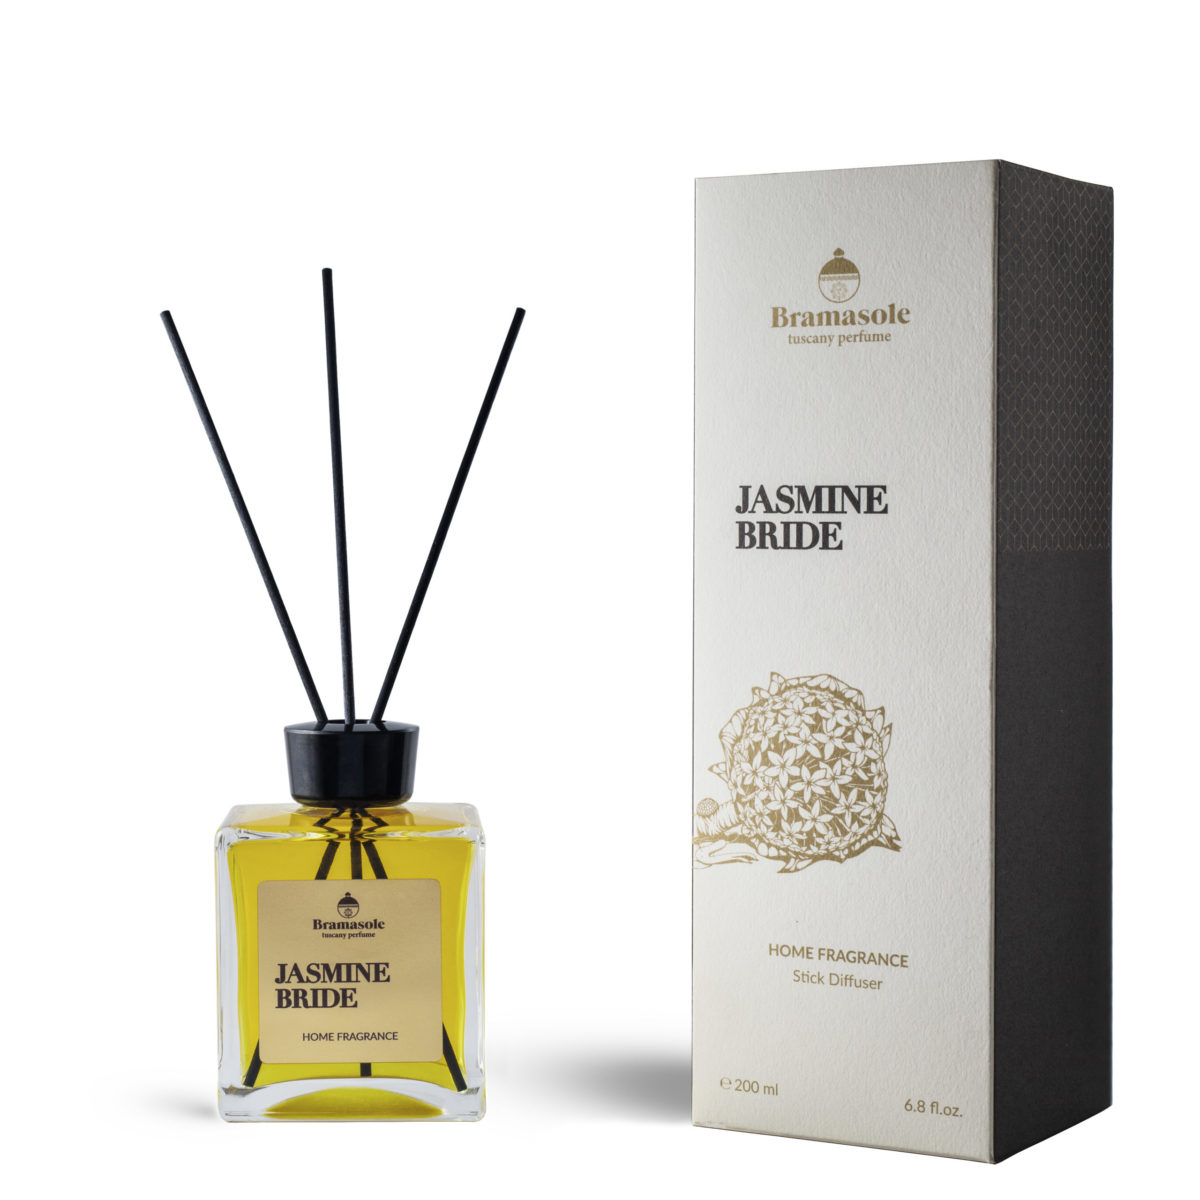 Jasmine Bride – home fragrance